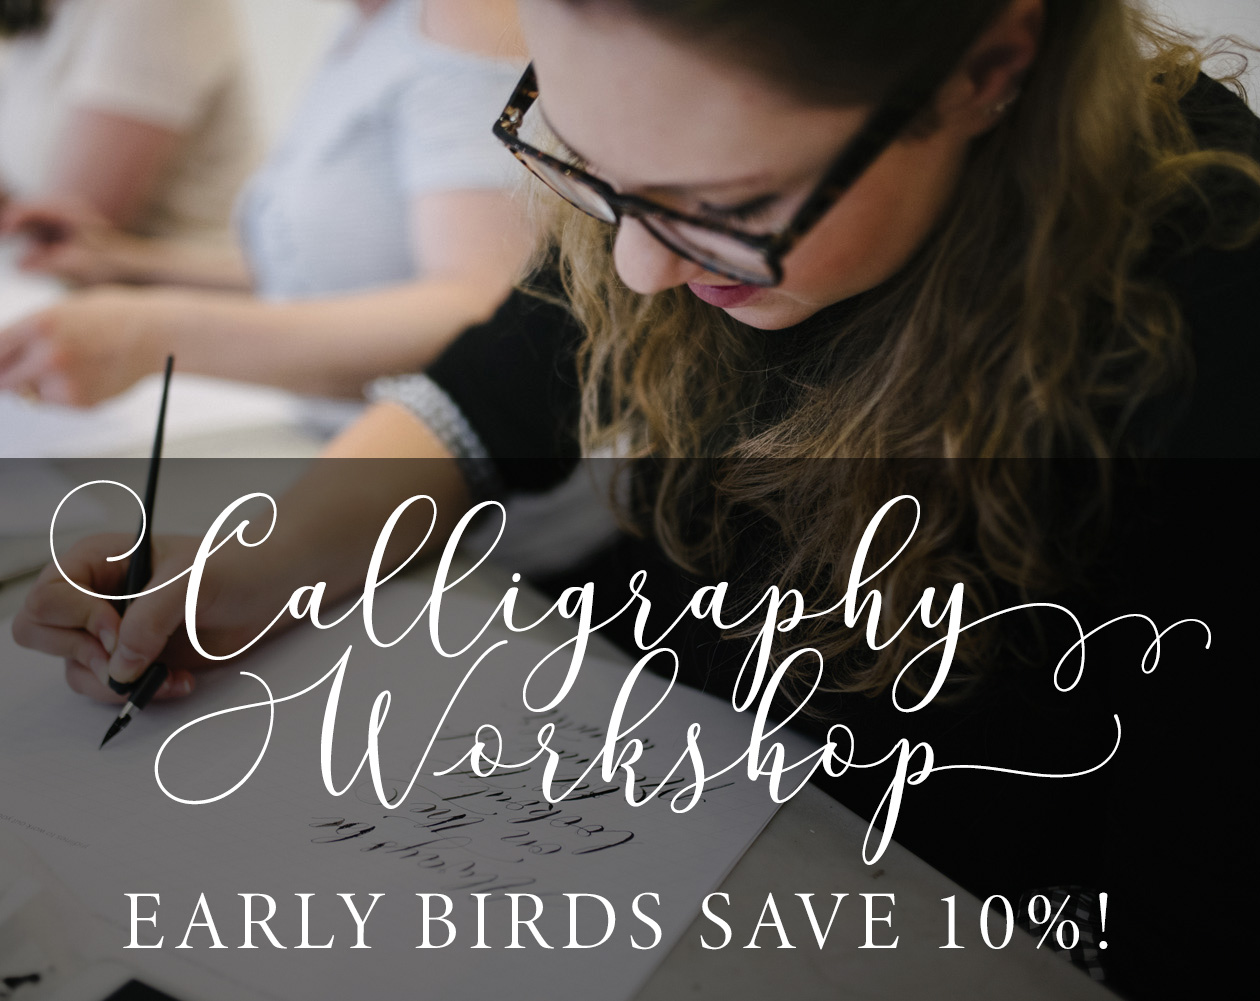 Calligraphy workshops SALE extended!! Save on my Manchester classes if you book by Friday!